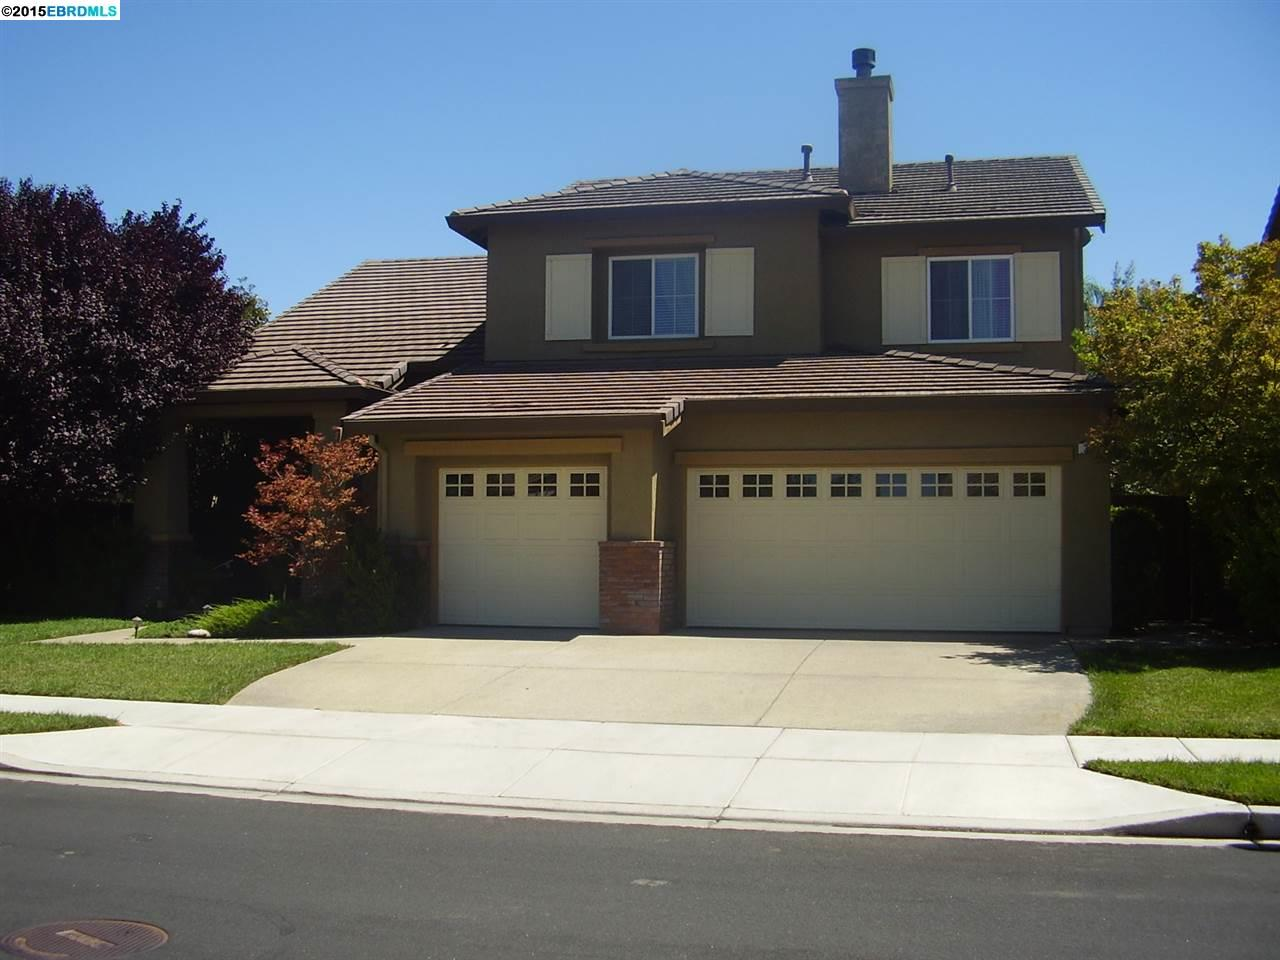 Single Family Home for sale in 390 MADERA ST, BRENTWOOD, California ,94513